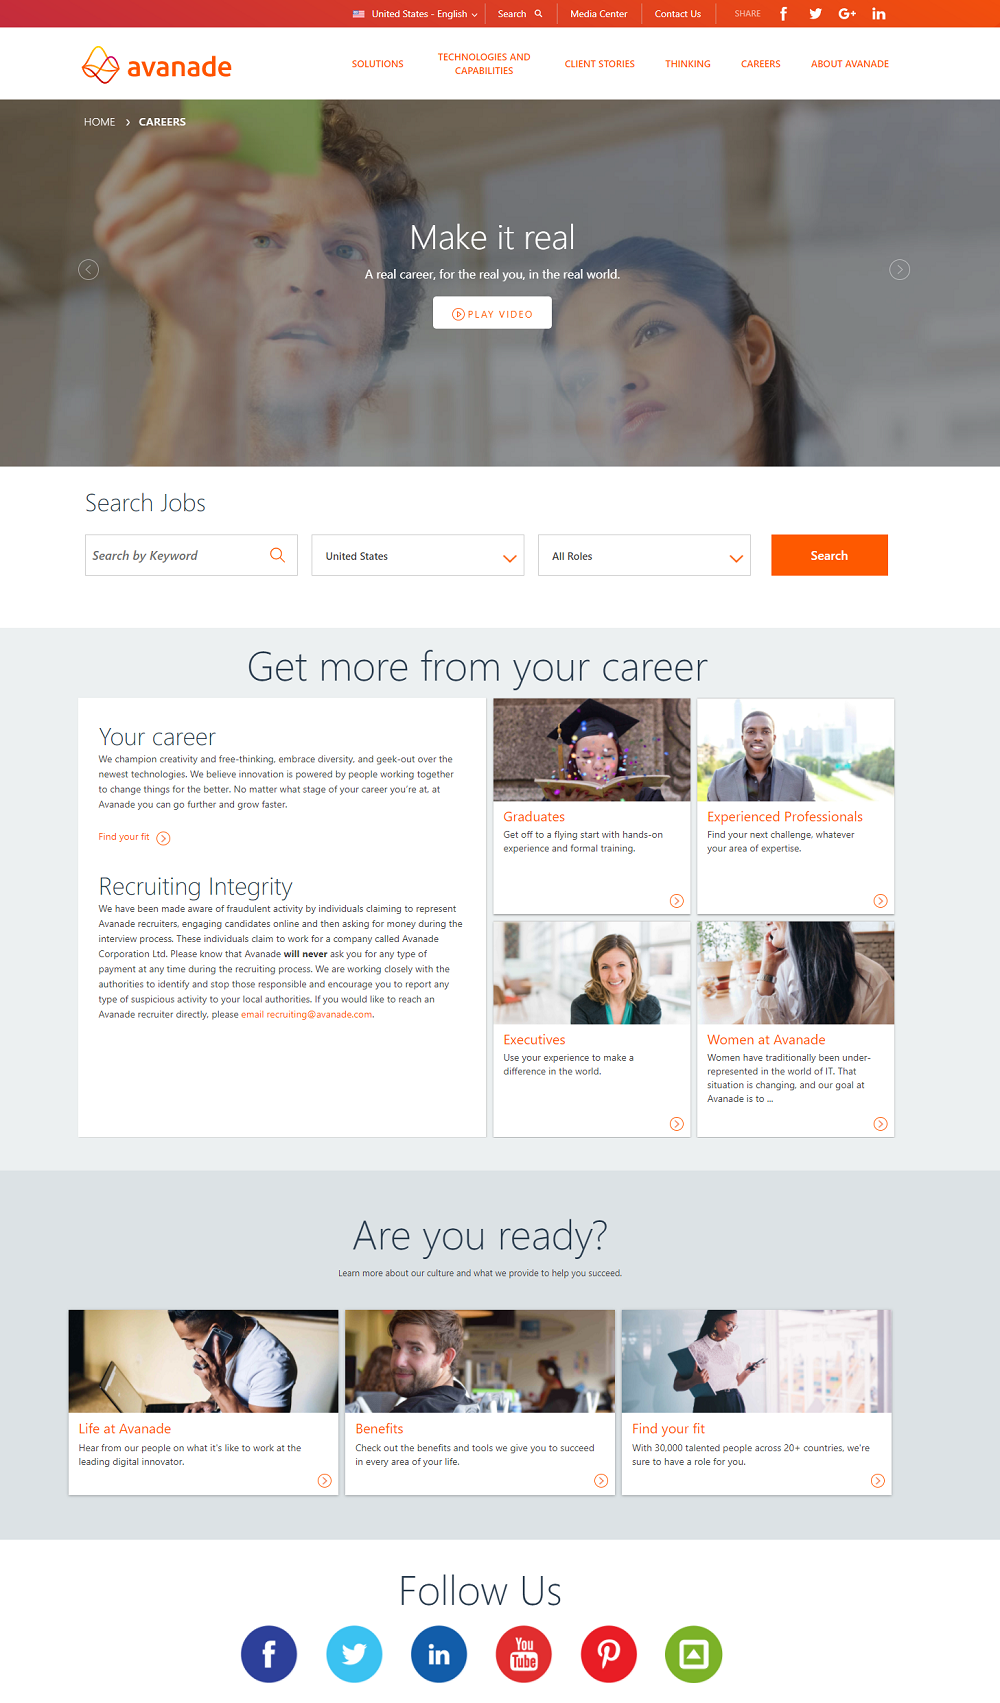 Avanade Company Career Page Example